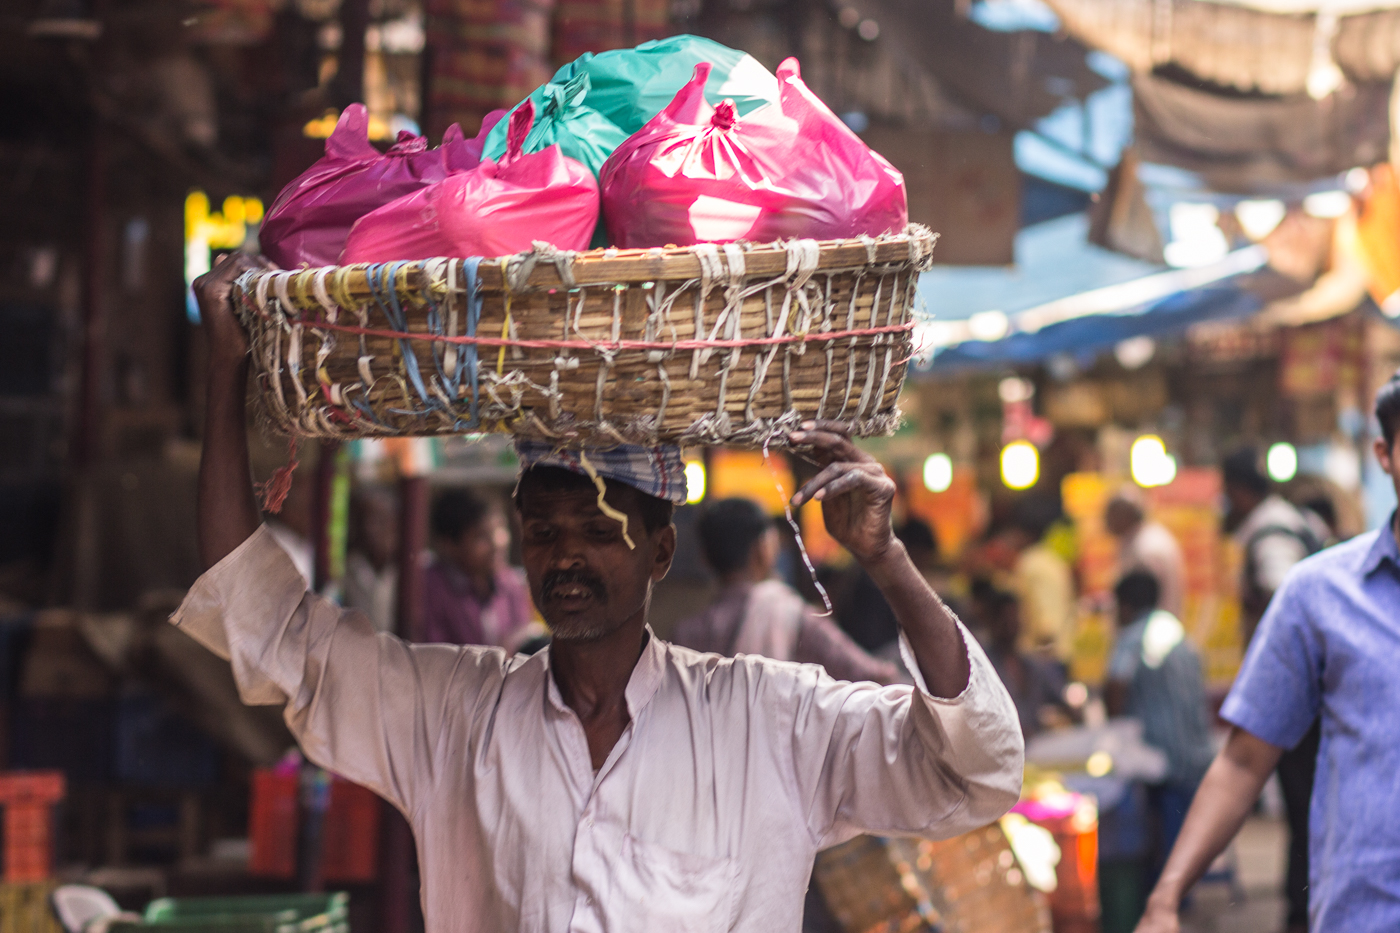 Vendor holding a basket of goods above his head in Crawford Market, Mumbai, Maharashtra, India. Travel street photography.